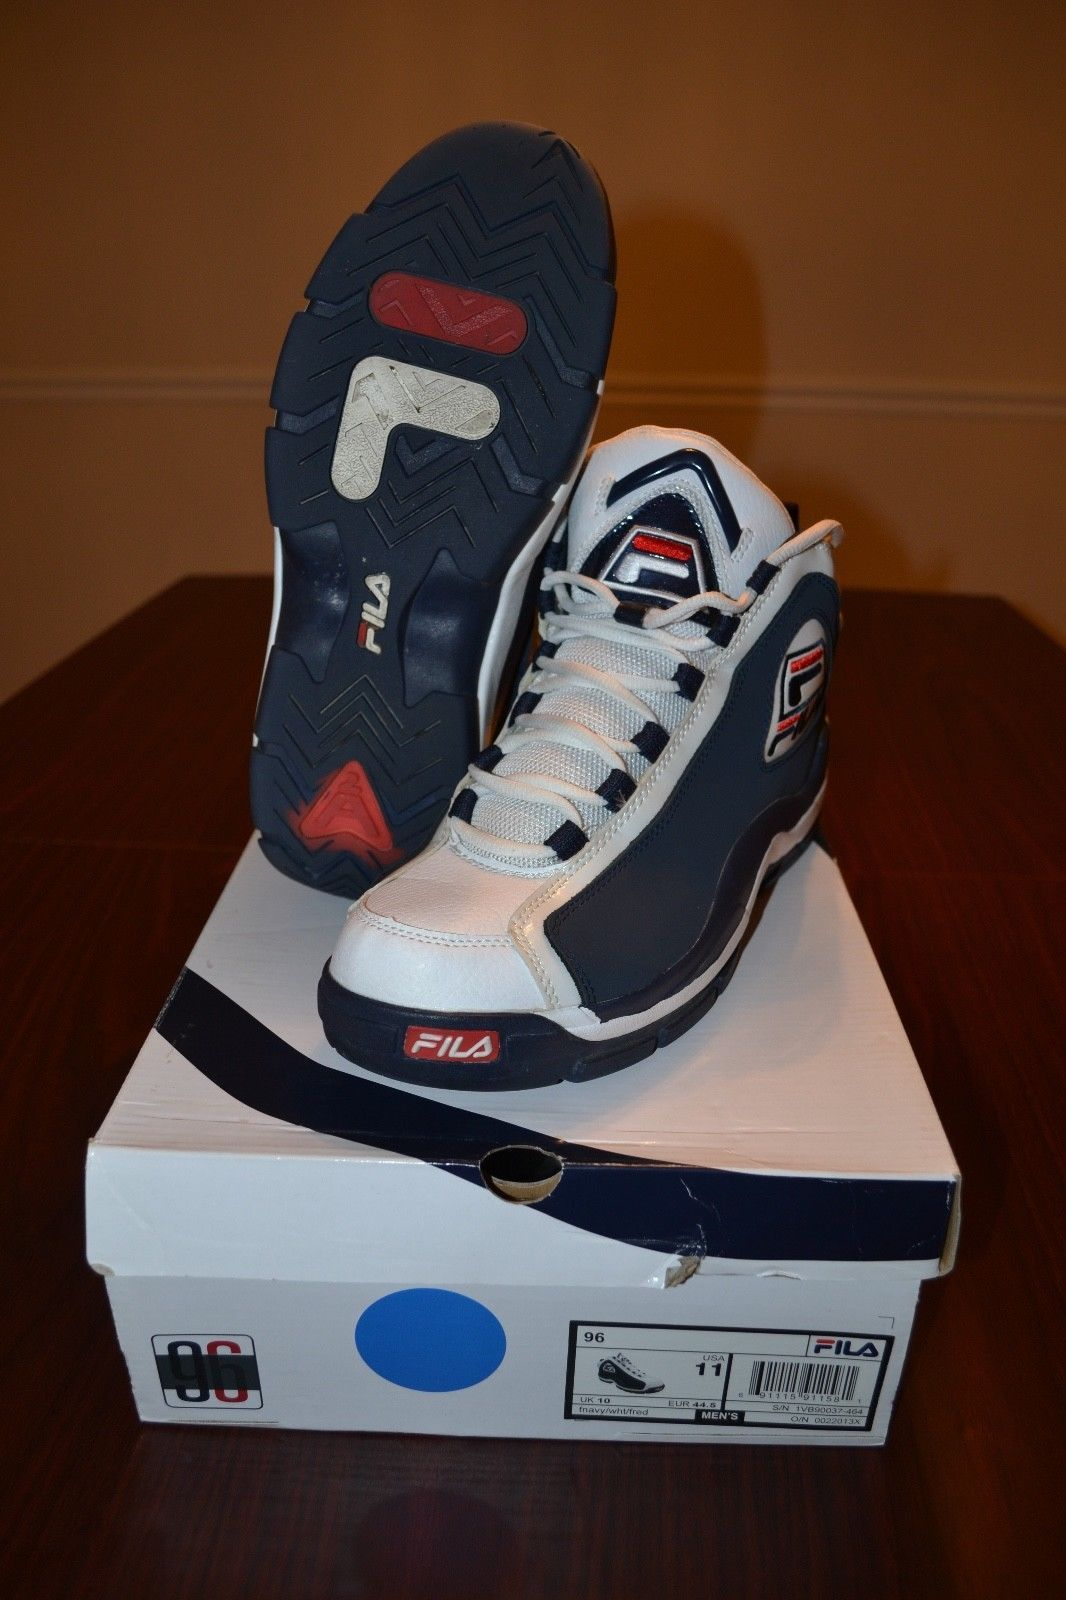 9fbf161e58b Details about Fila men's 96 grant hill white/navy shoes in 2019 ...